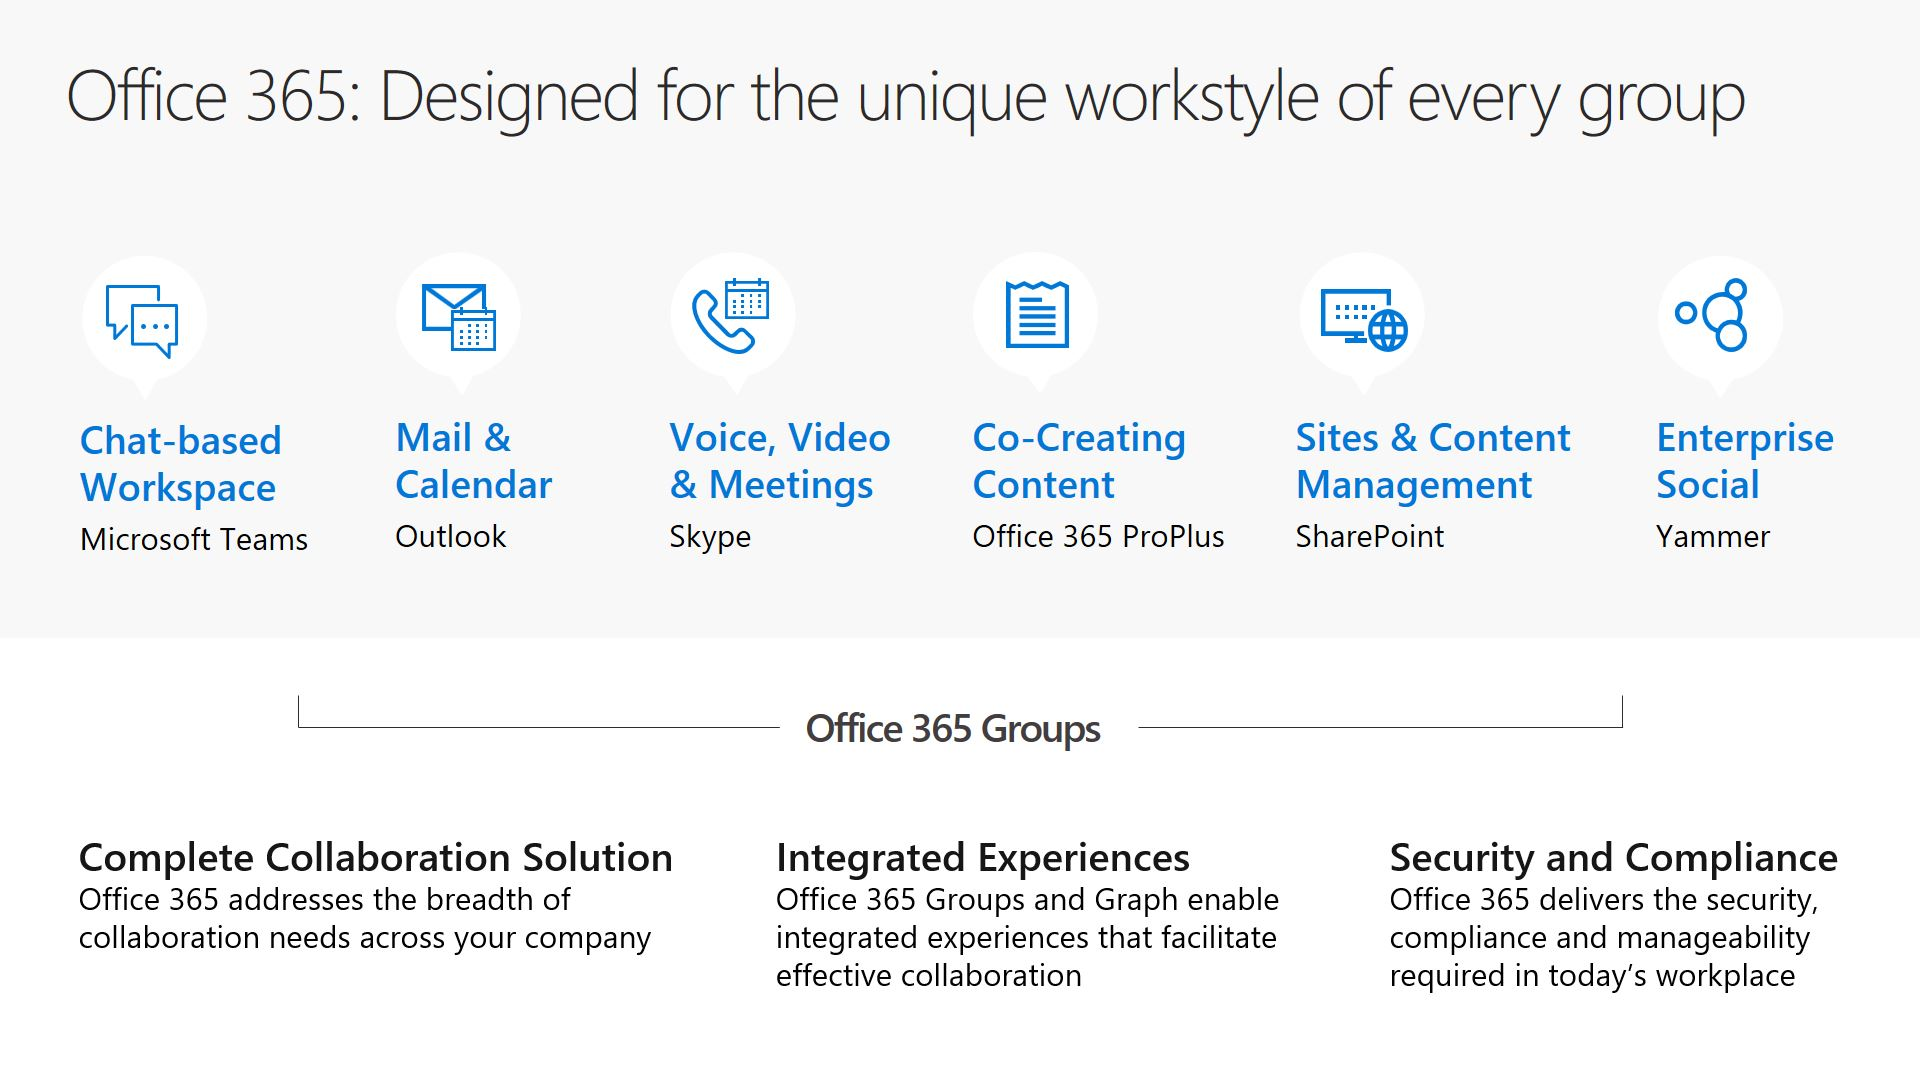 Webinar Slide offer Office 365 Groups insights